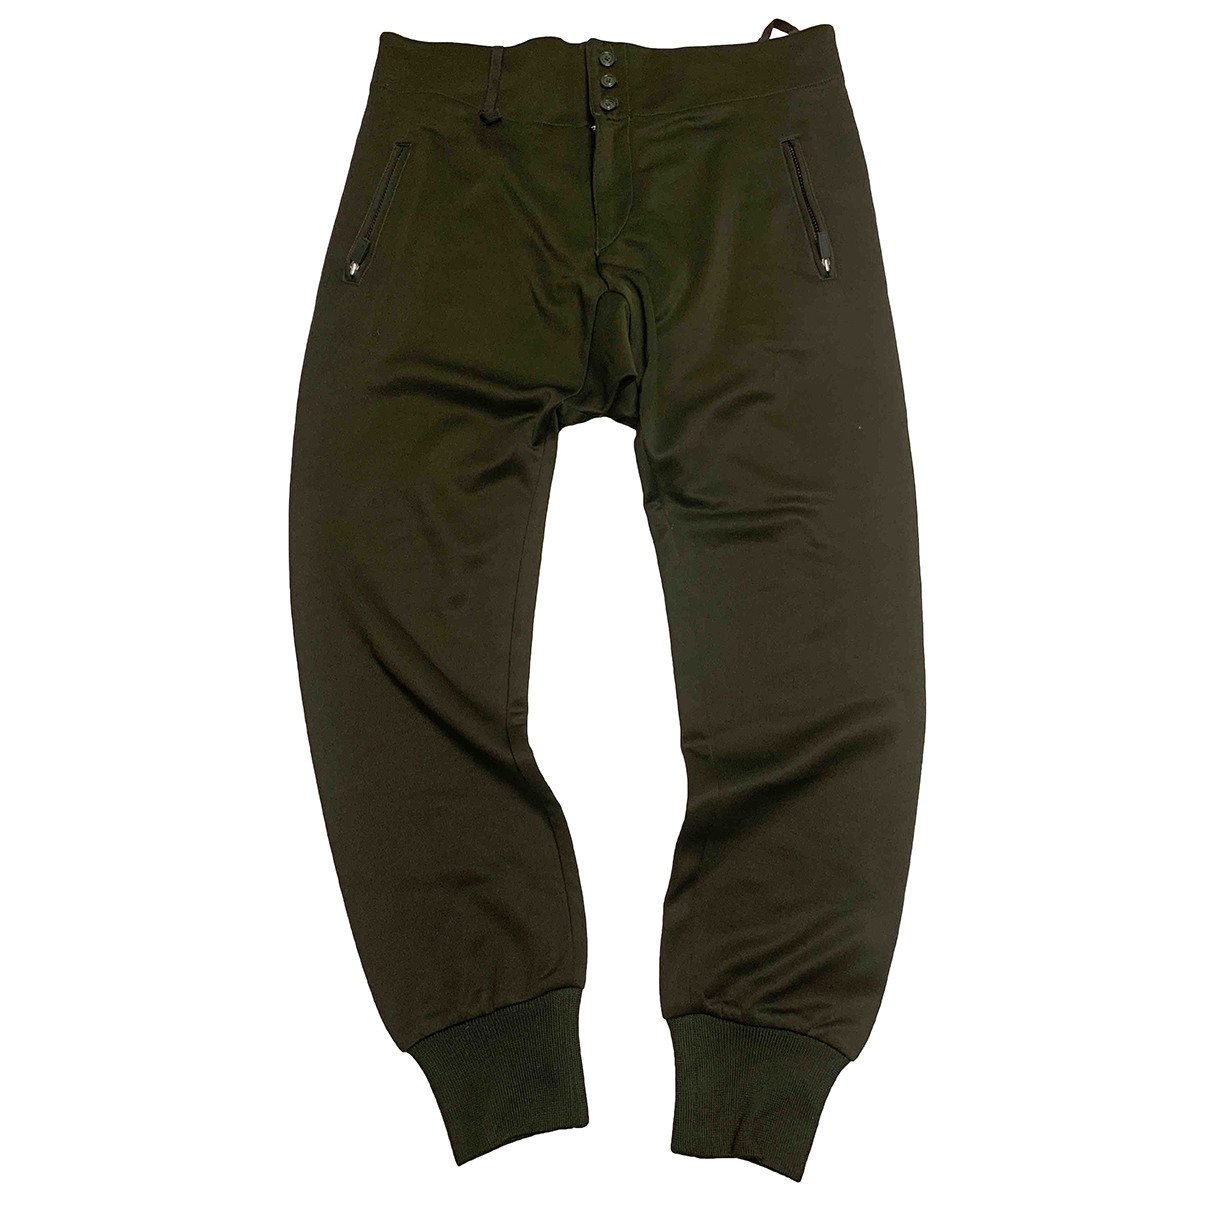 Y-3 \N Green Cotton Trousers for Men S International